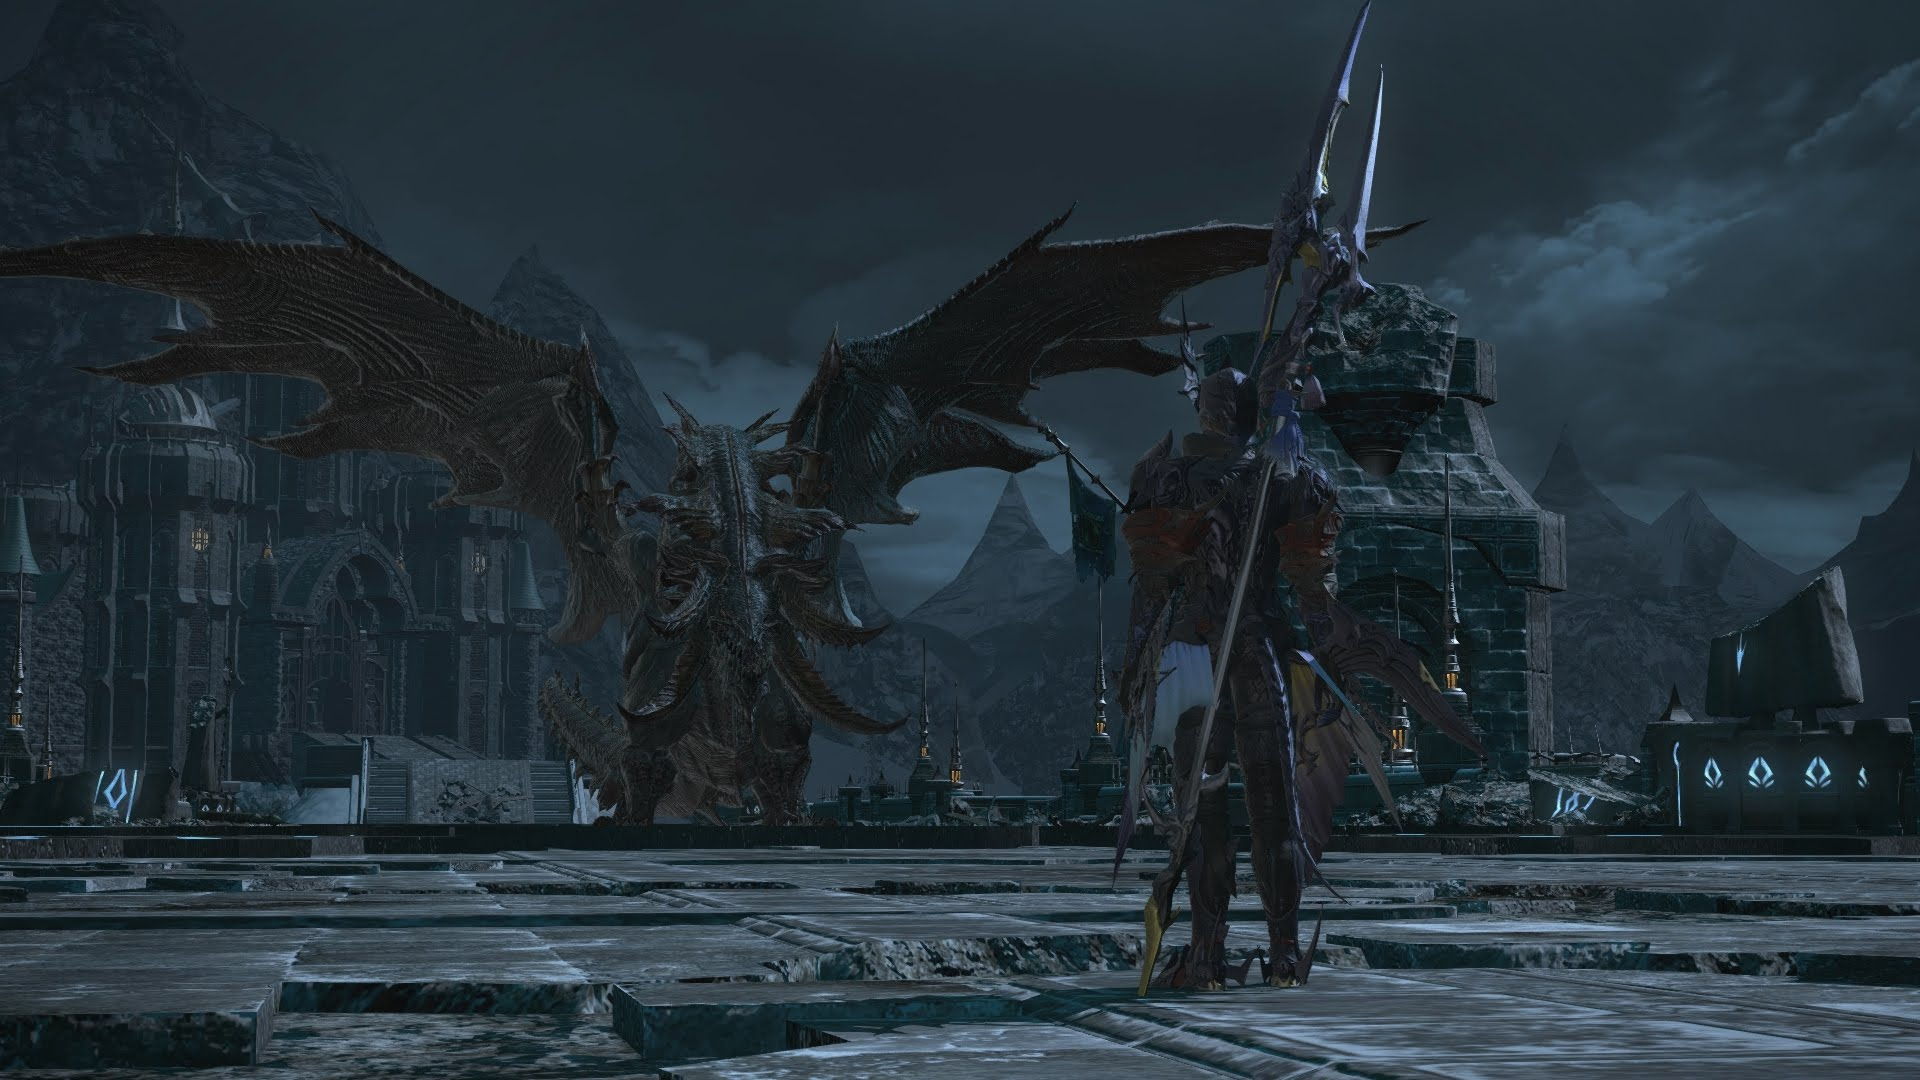 Final Fantasy XIV Free Login Campaign and Latest Patch Notes